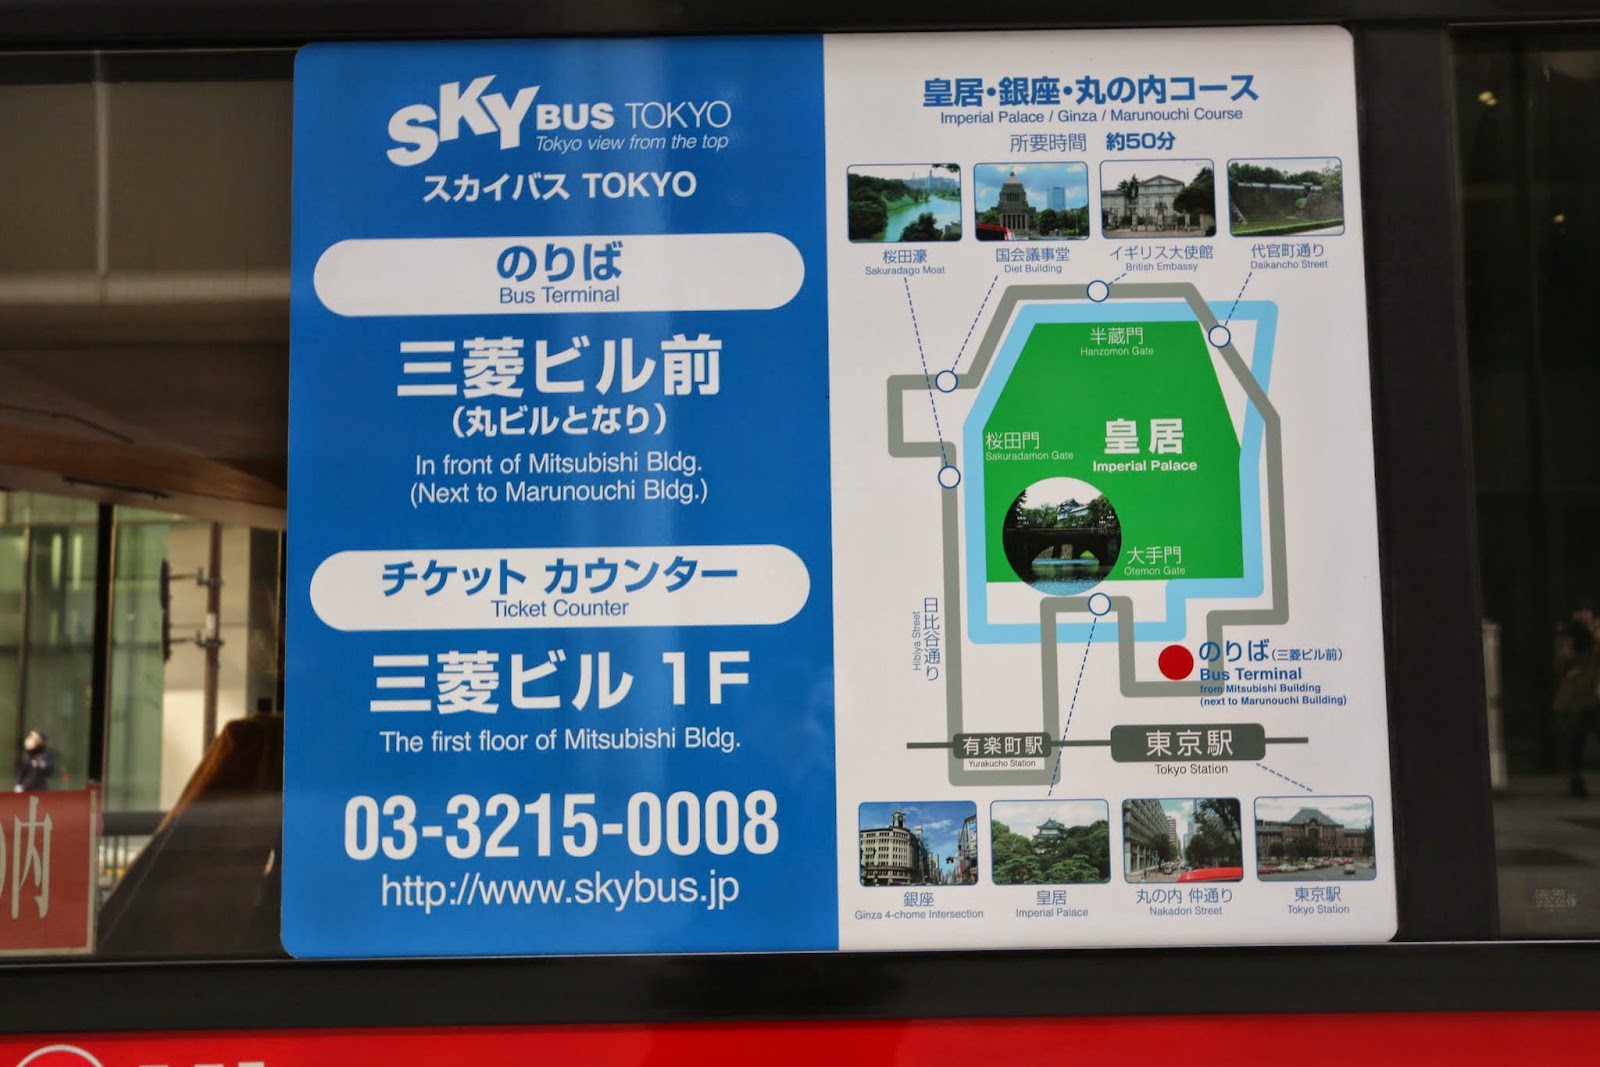 Detailed information of Sky Bus Tokyo tours which is also available on www.skybus.jp